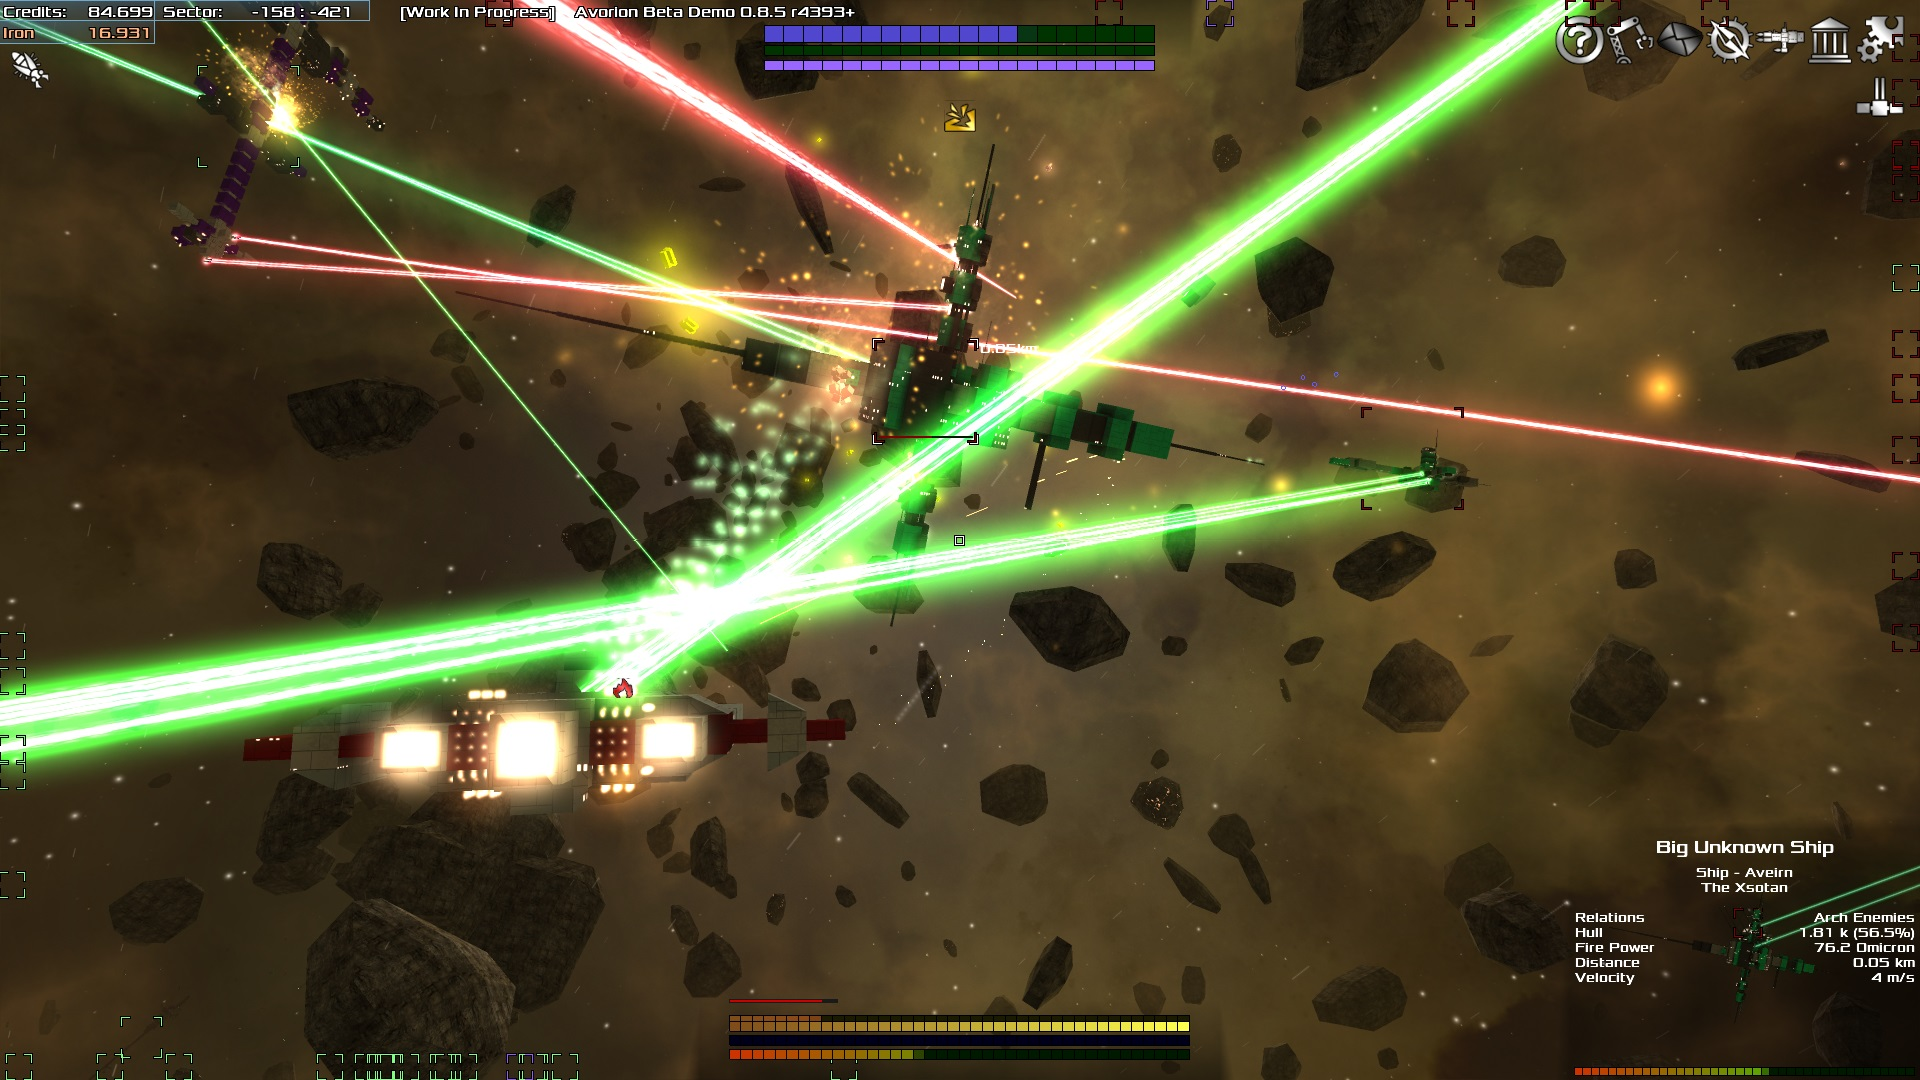 The entire gameplay of Avorion has a faster pace now, ships are faster, weapons are stronger